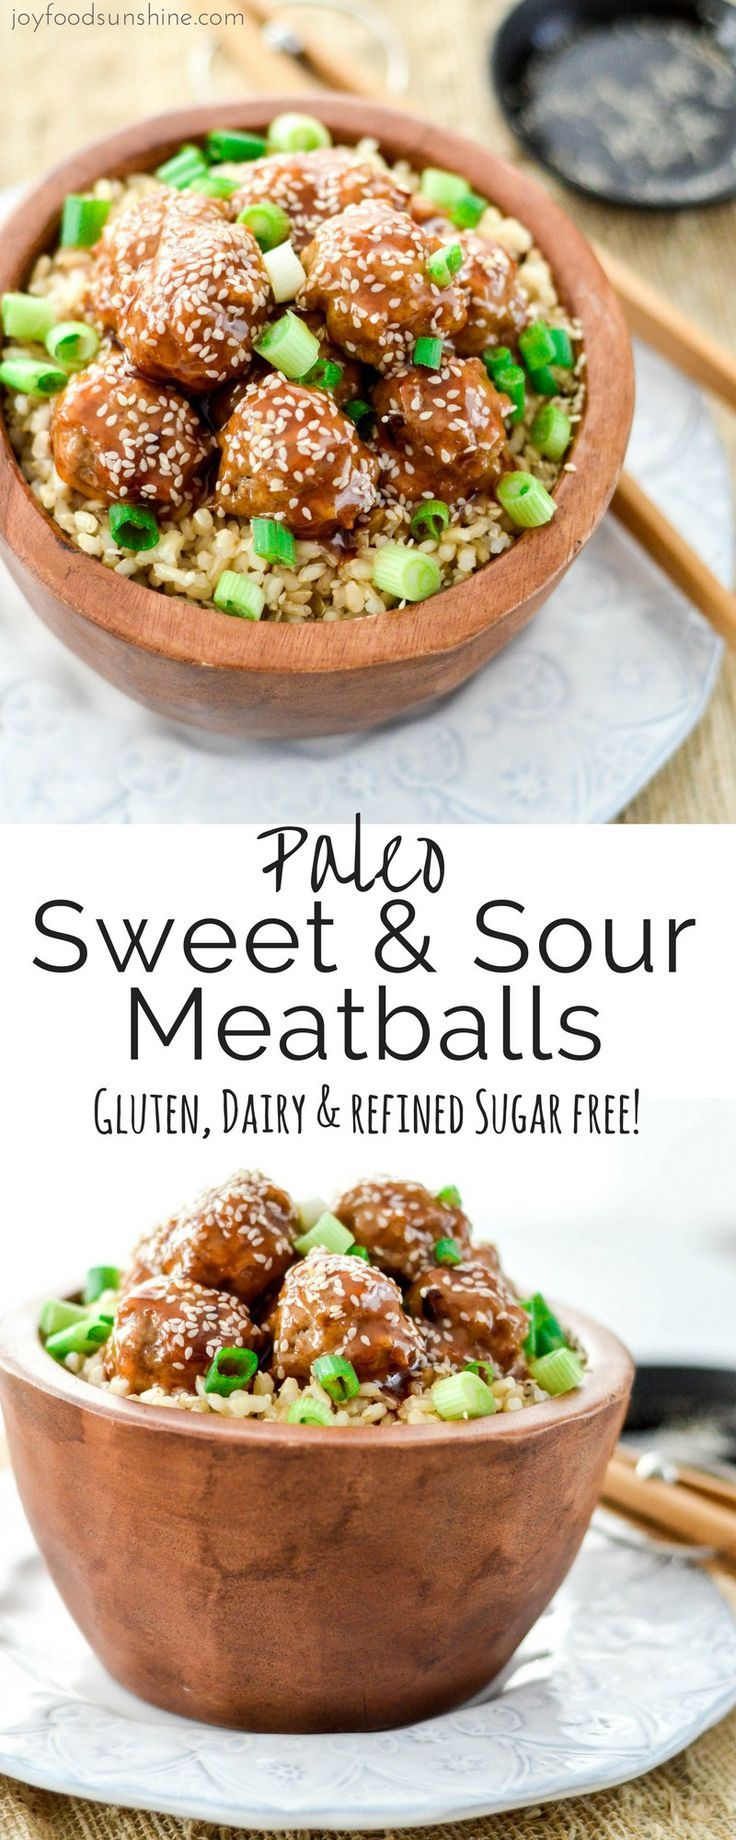 Paleo Sweet and Sour Meatballs! The perfect quick & easy weeknight recipe that everyone in your family will love! Gluten-free, dairy-free, and refined sugar free! #dinnerrecipesforfamilymaindishes